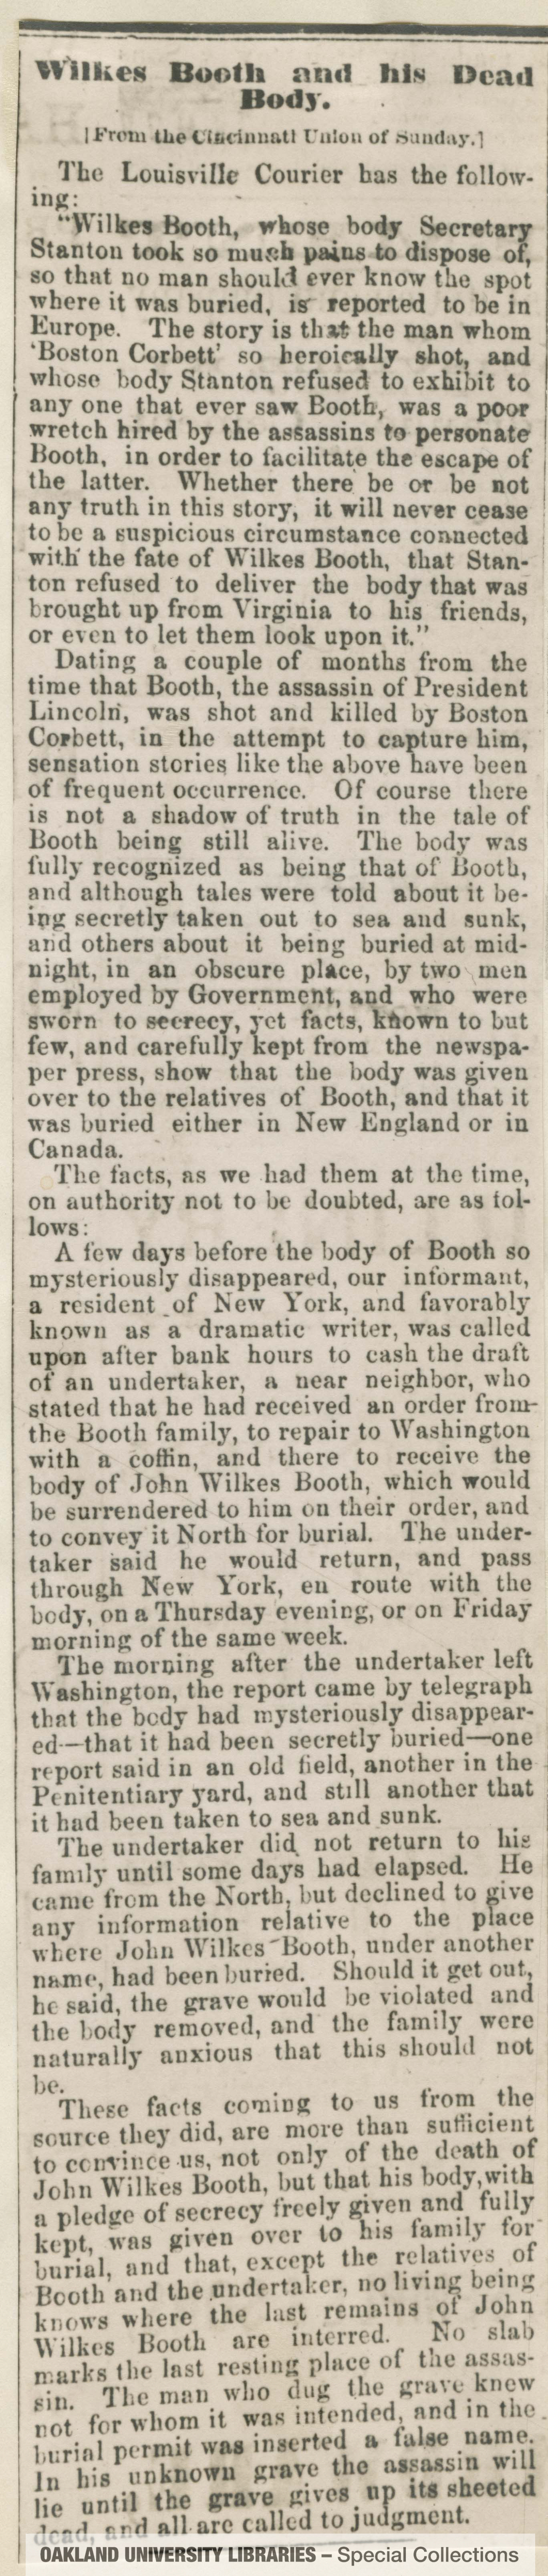 Wilkes Booth and his Dead Body [From the Cincinnati Union of Sunday]